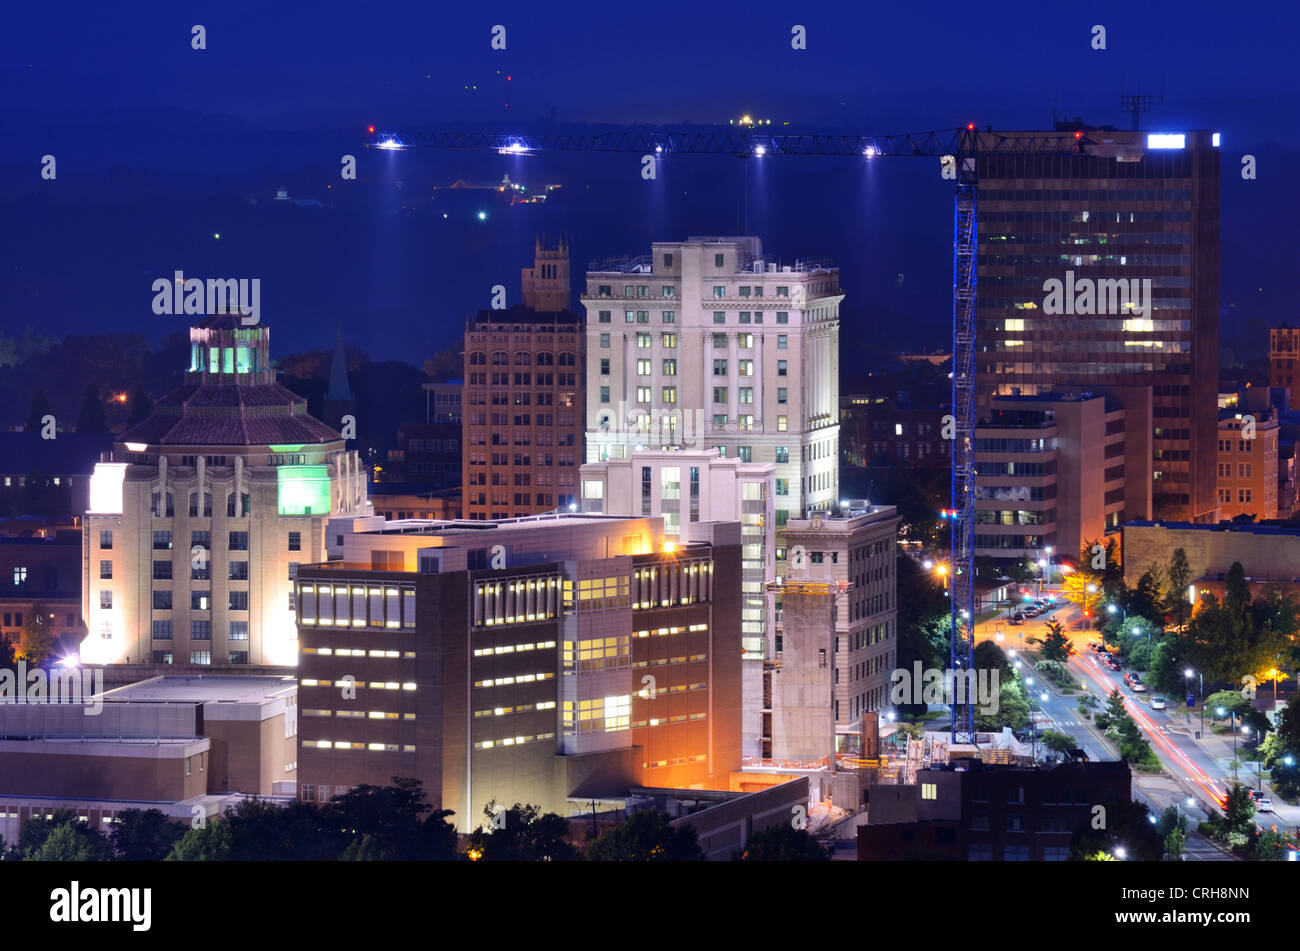 Downtown Asheville, North Carolina's city hall and courthouse building among other notable structures. - Stock Image